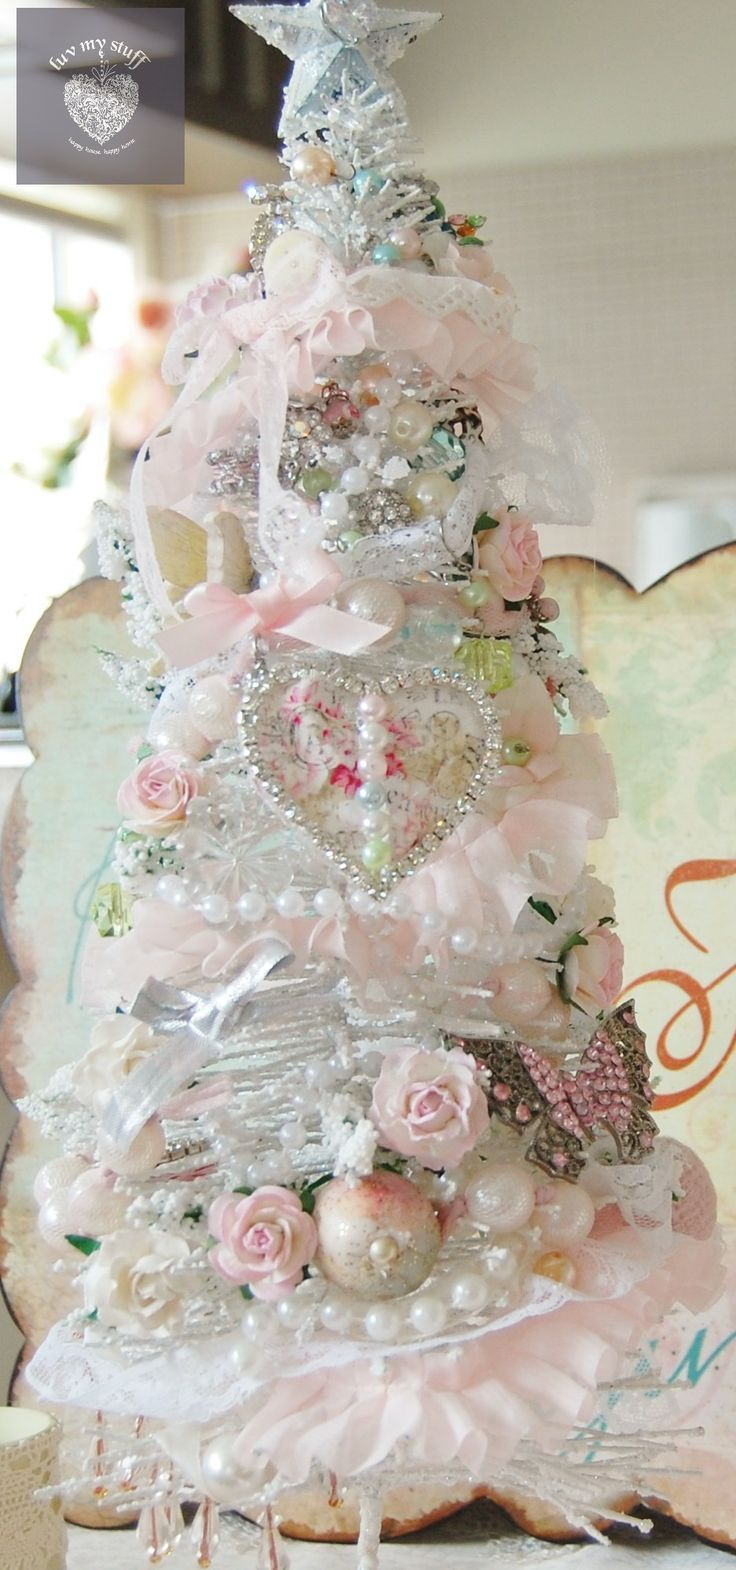 Pink Shabby Chic Dresser: 17 Best Images About Shabby Christmas~ On Pinterest